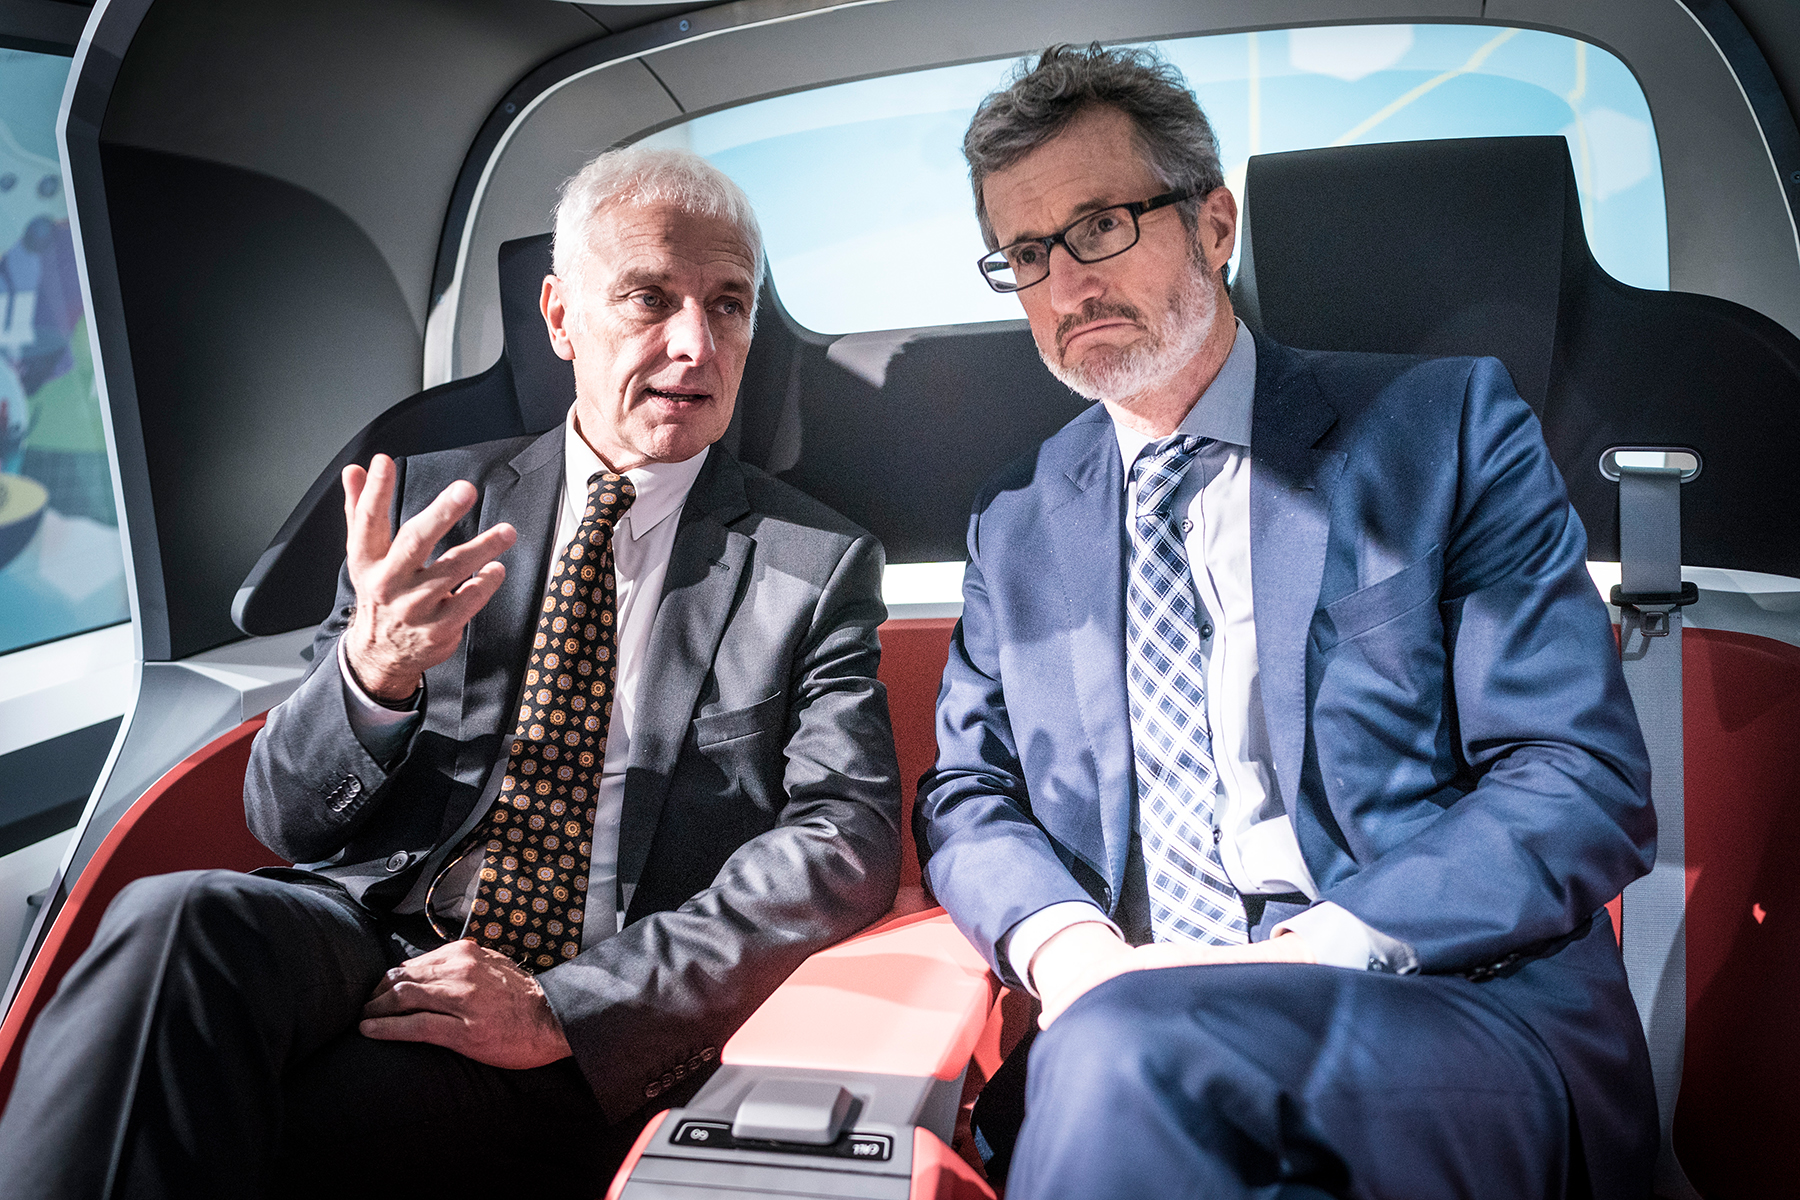 Matthias Müller, left, has a surprising message. Georg Kell, founder of the United Nations Global Compact and a VW adviser, listens. Source: Dominik Butzmann for Handelsblatt